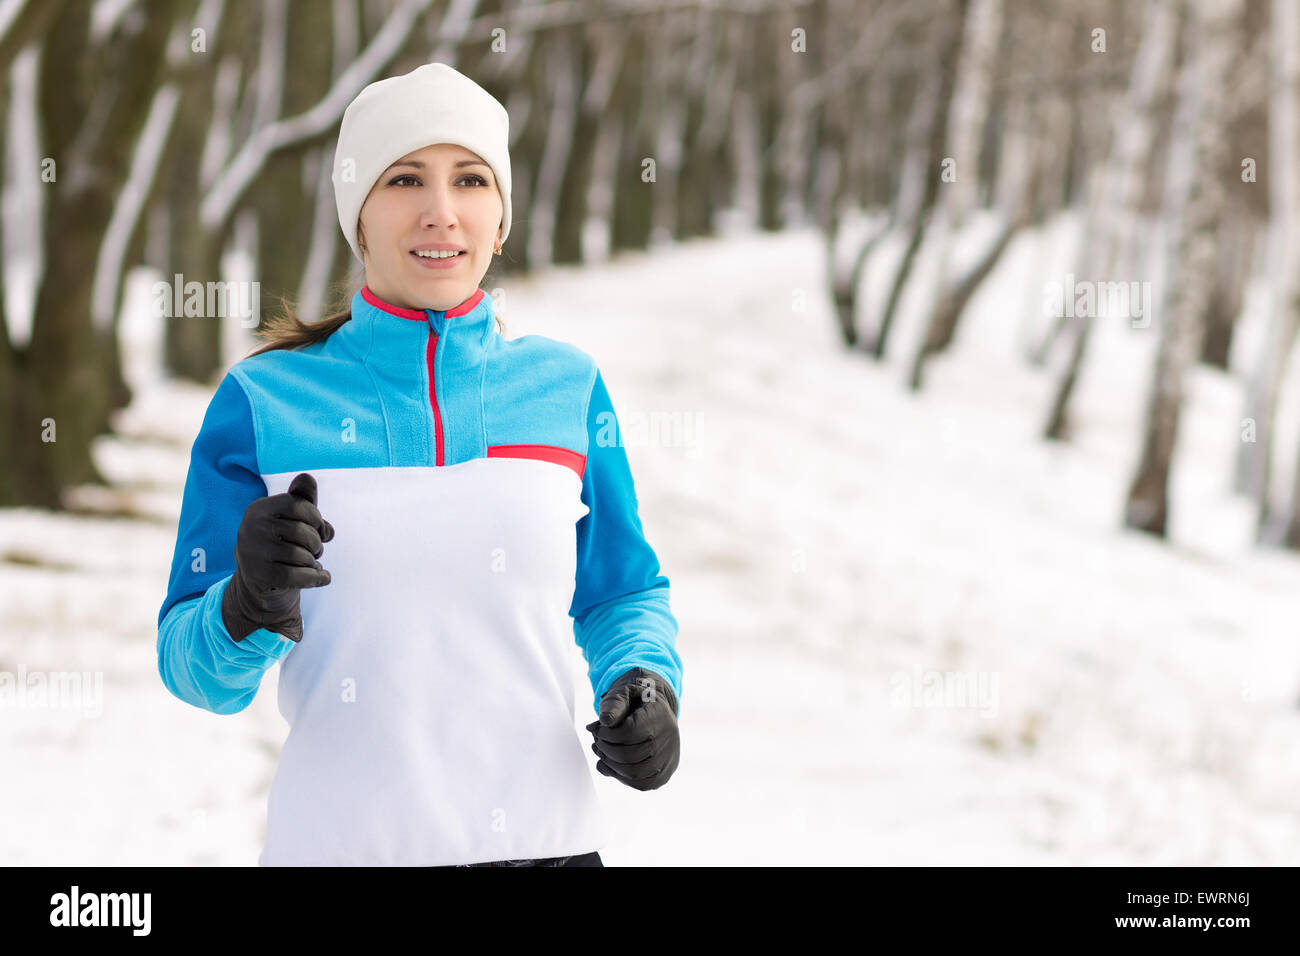 Young smiling athlete woman jogging in winter park. Pretty girl running at winter outdoor with copy space. - Stock Image